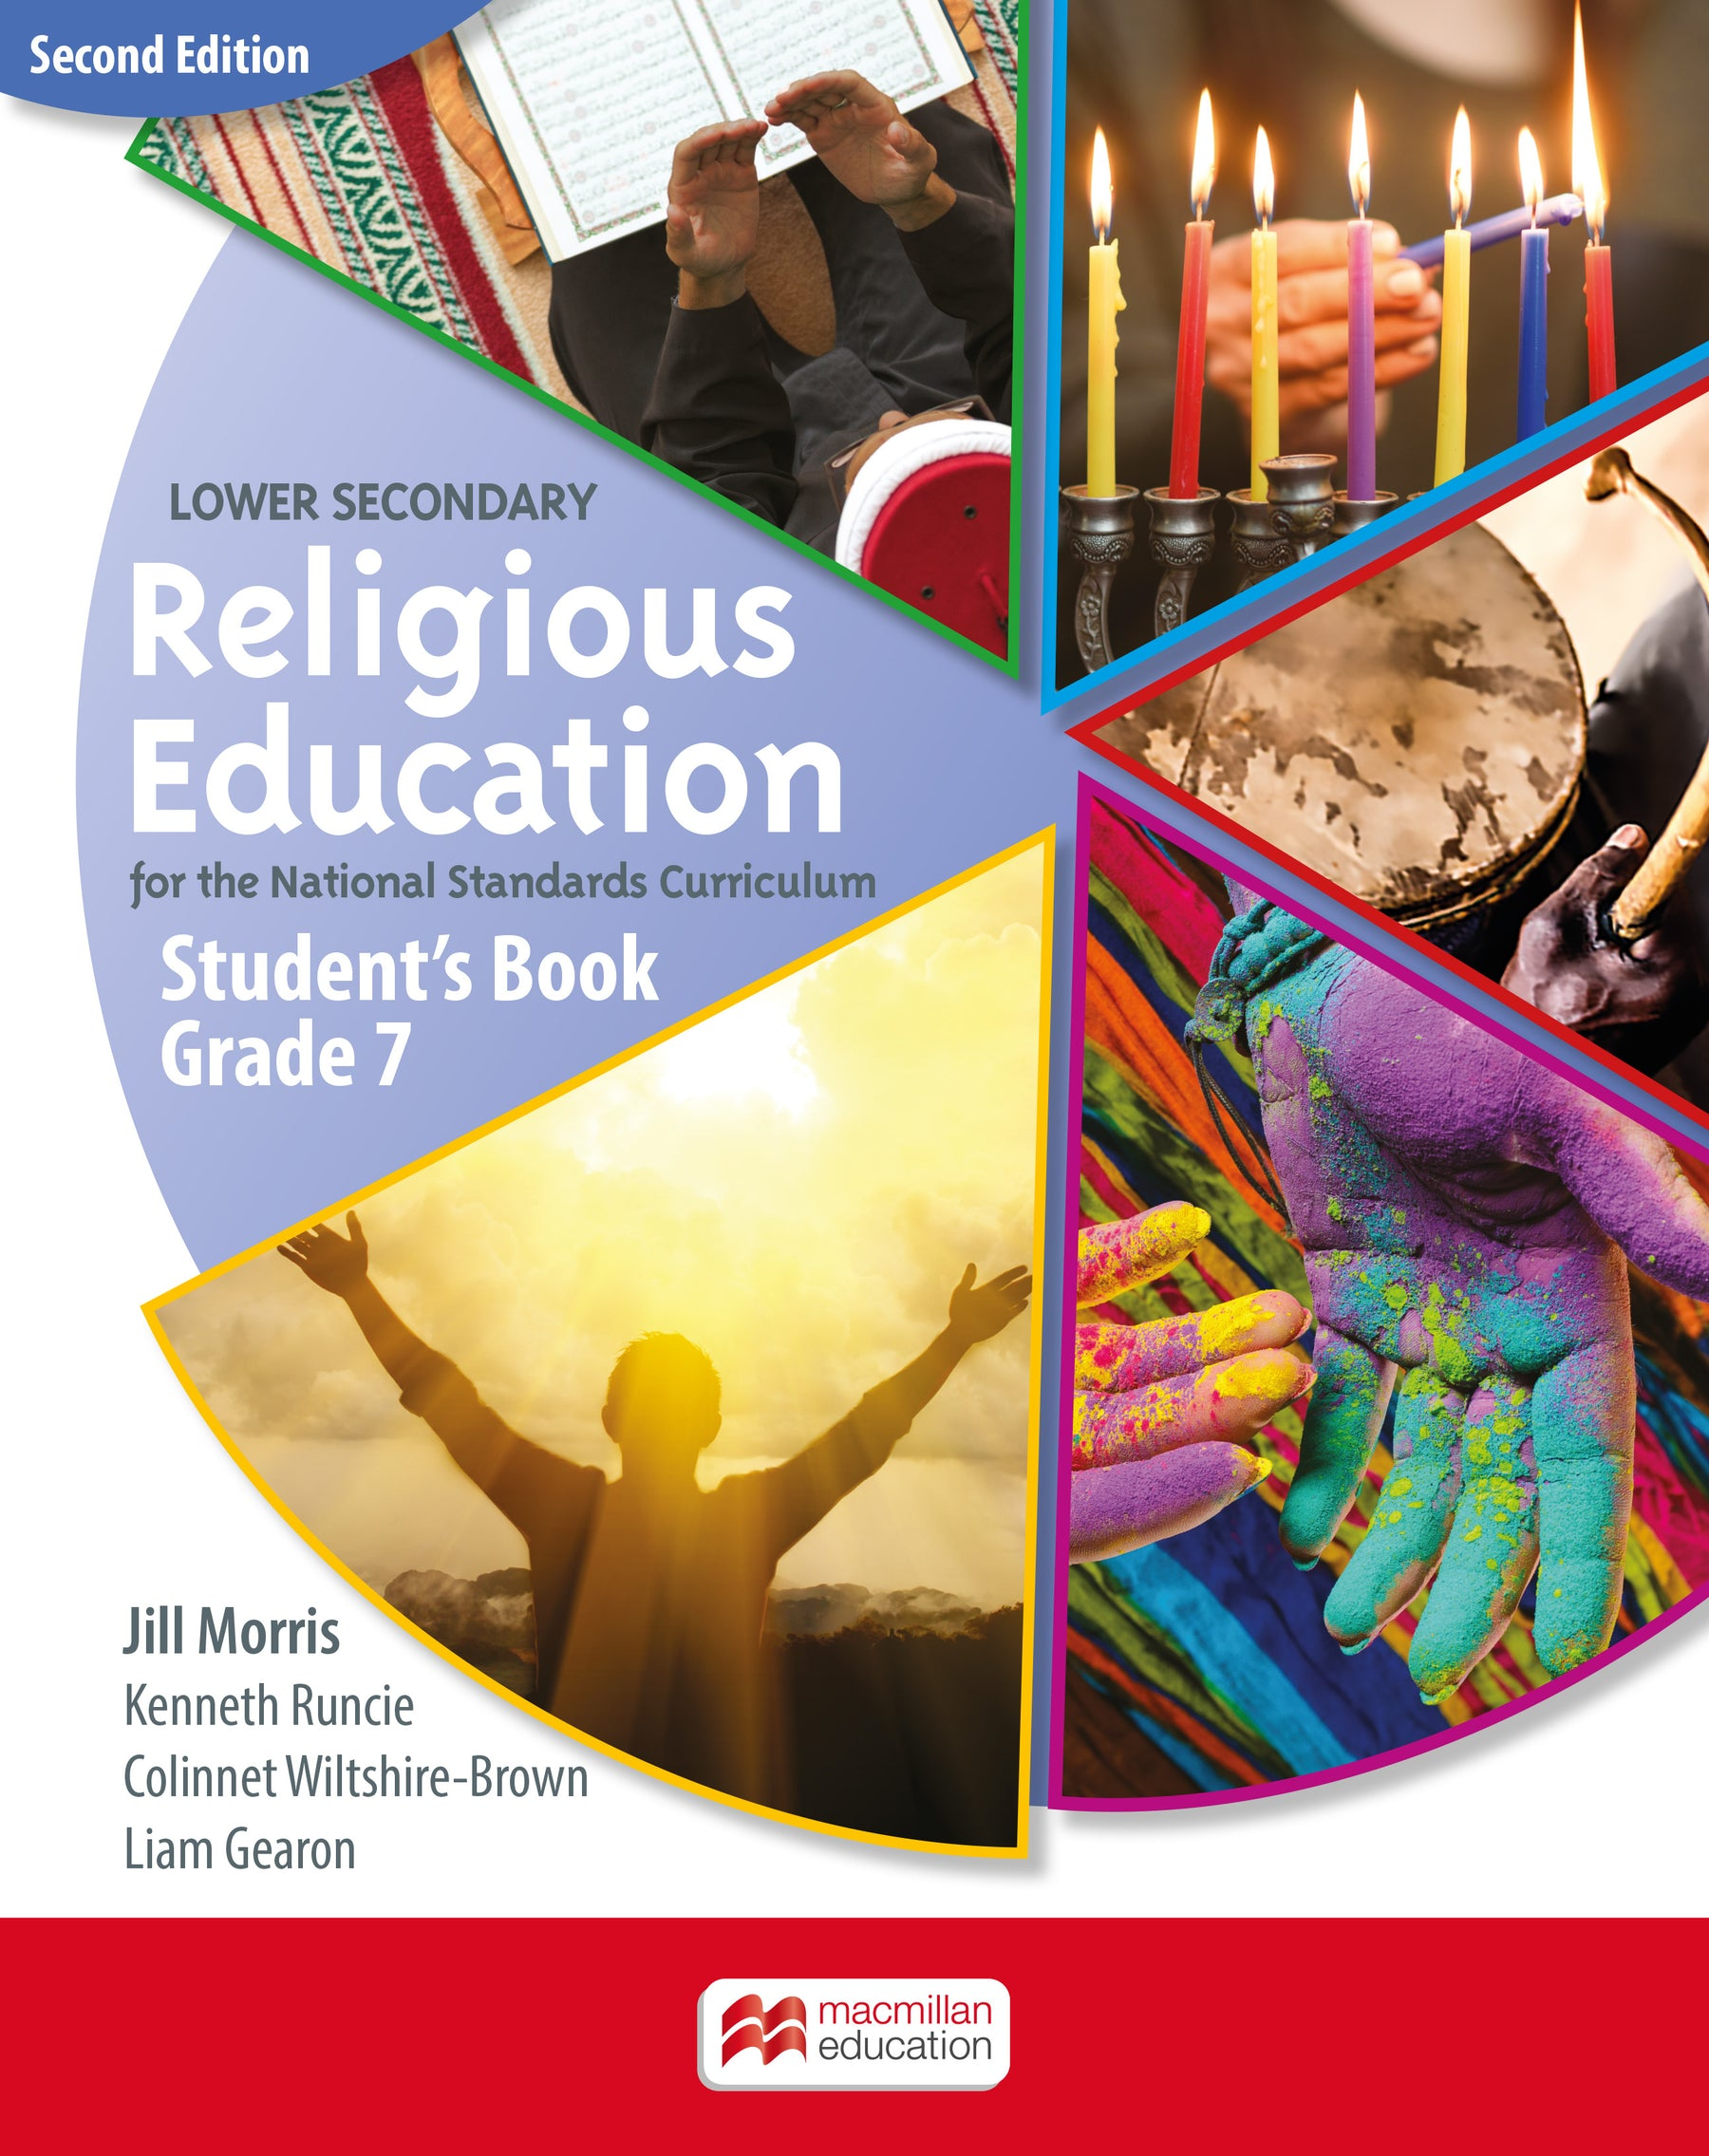 NEW - Religious Education, Second Edition